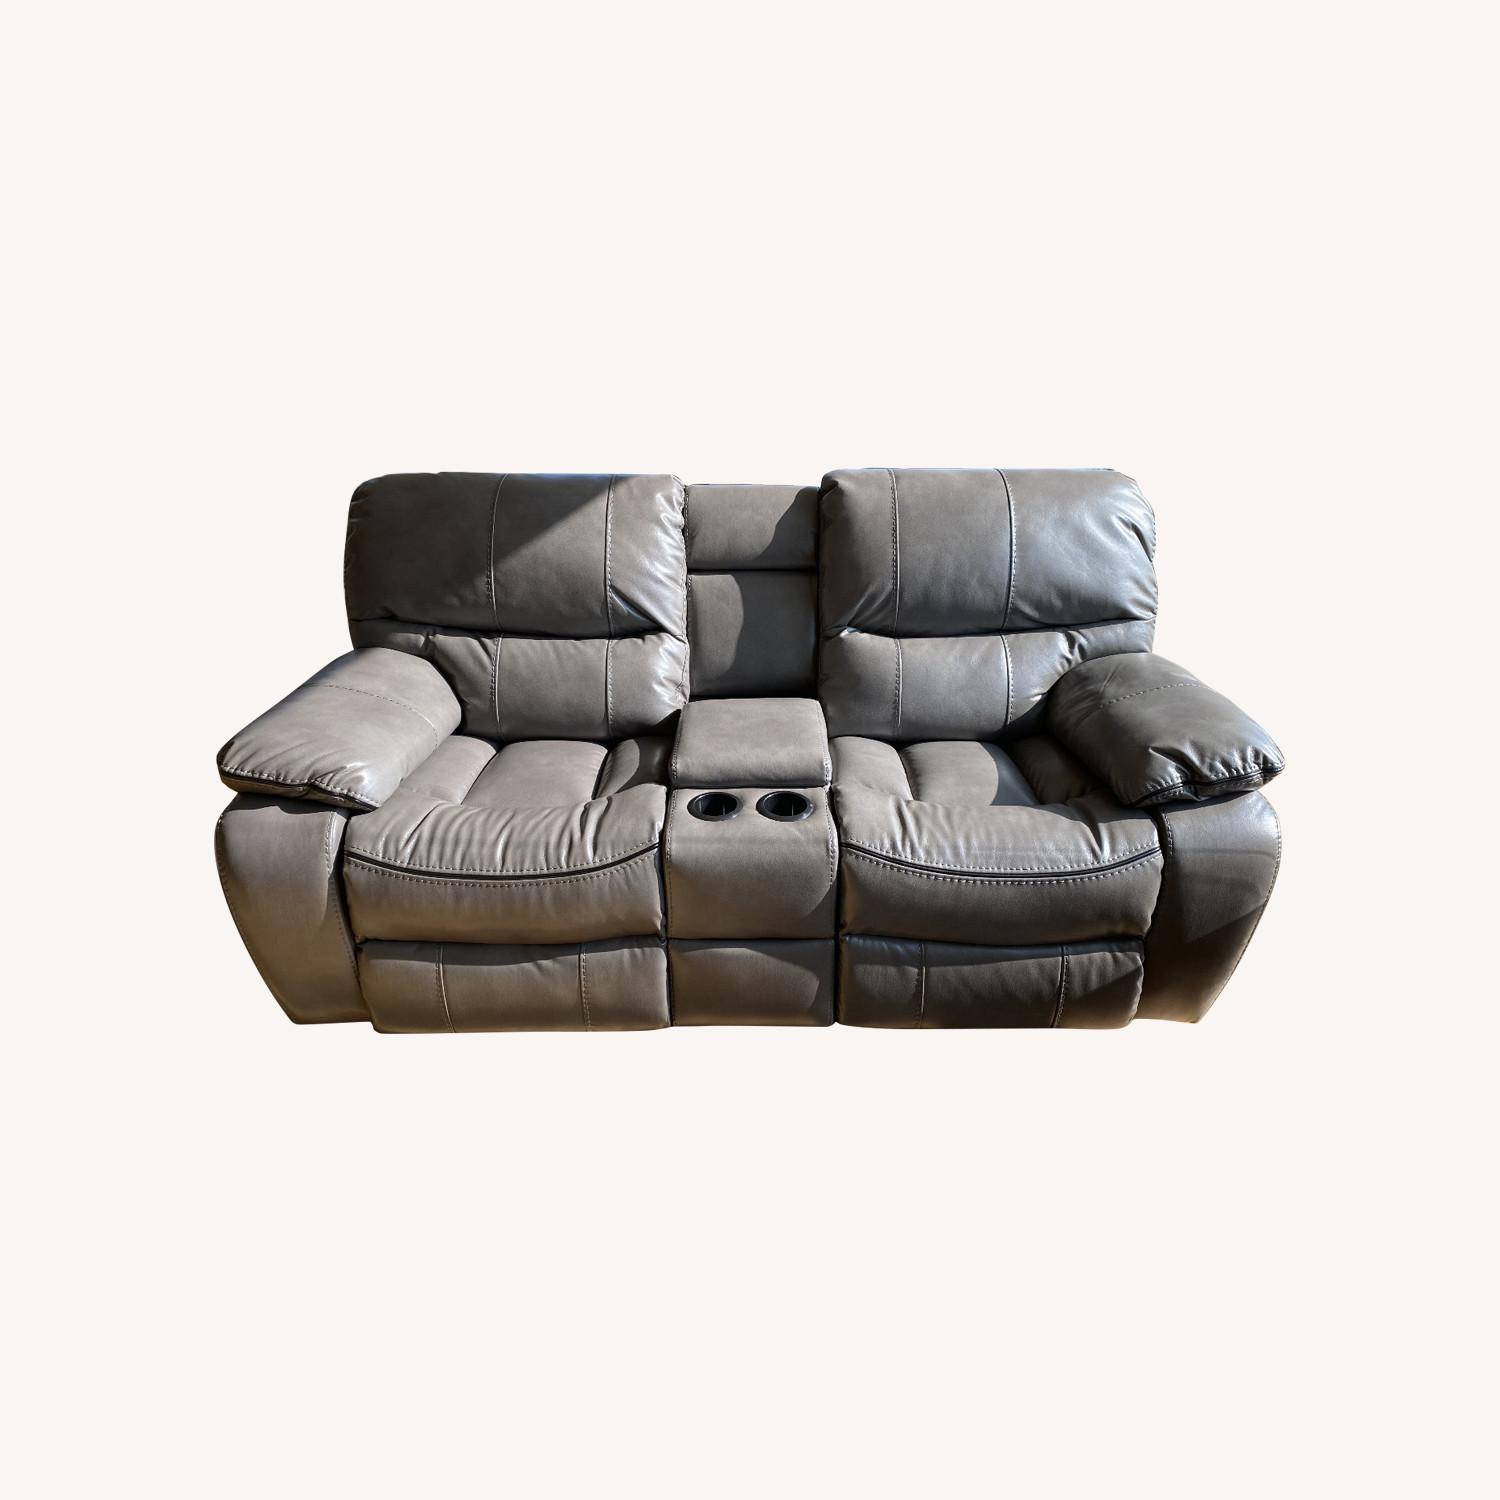 Grey Leather Recliner Sofa - image-0